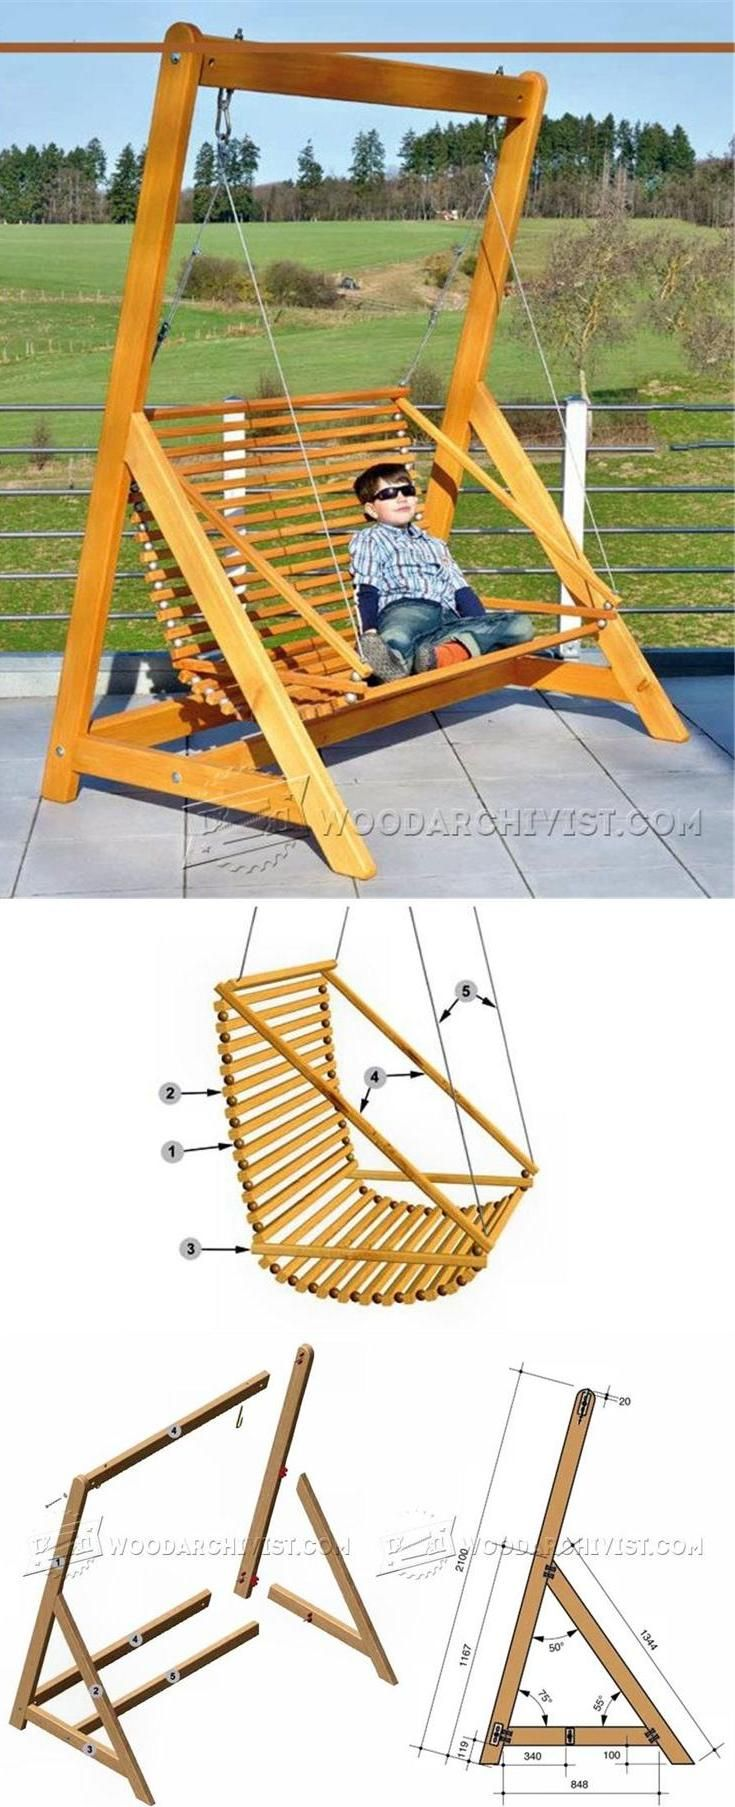 Garden Swing Plans - Outdoor Furniture Plans and Projects | WoodArchivist.com